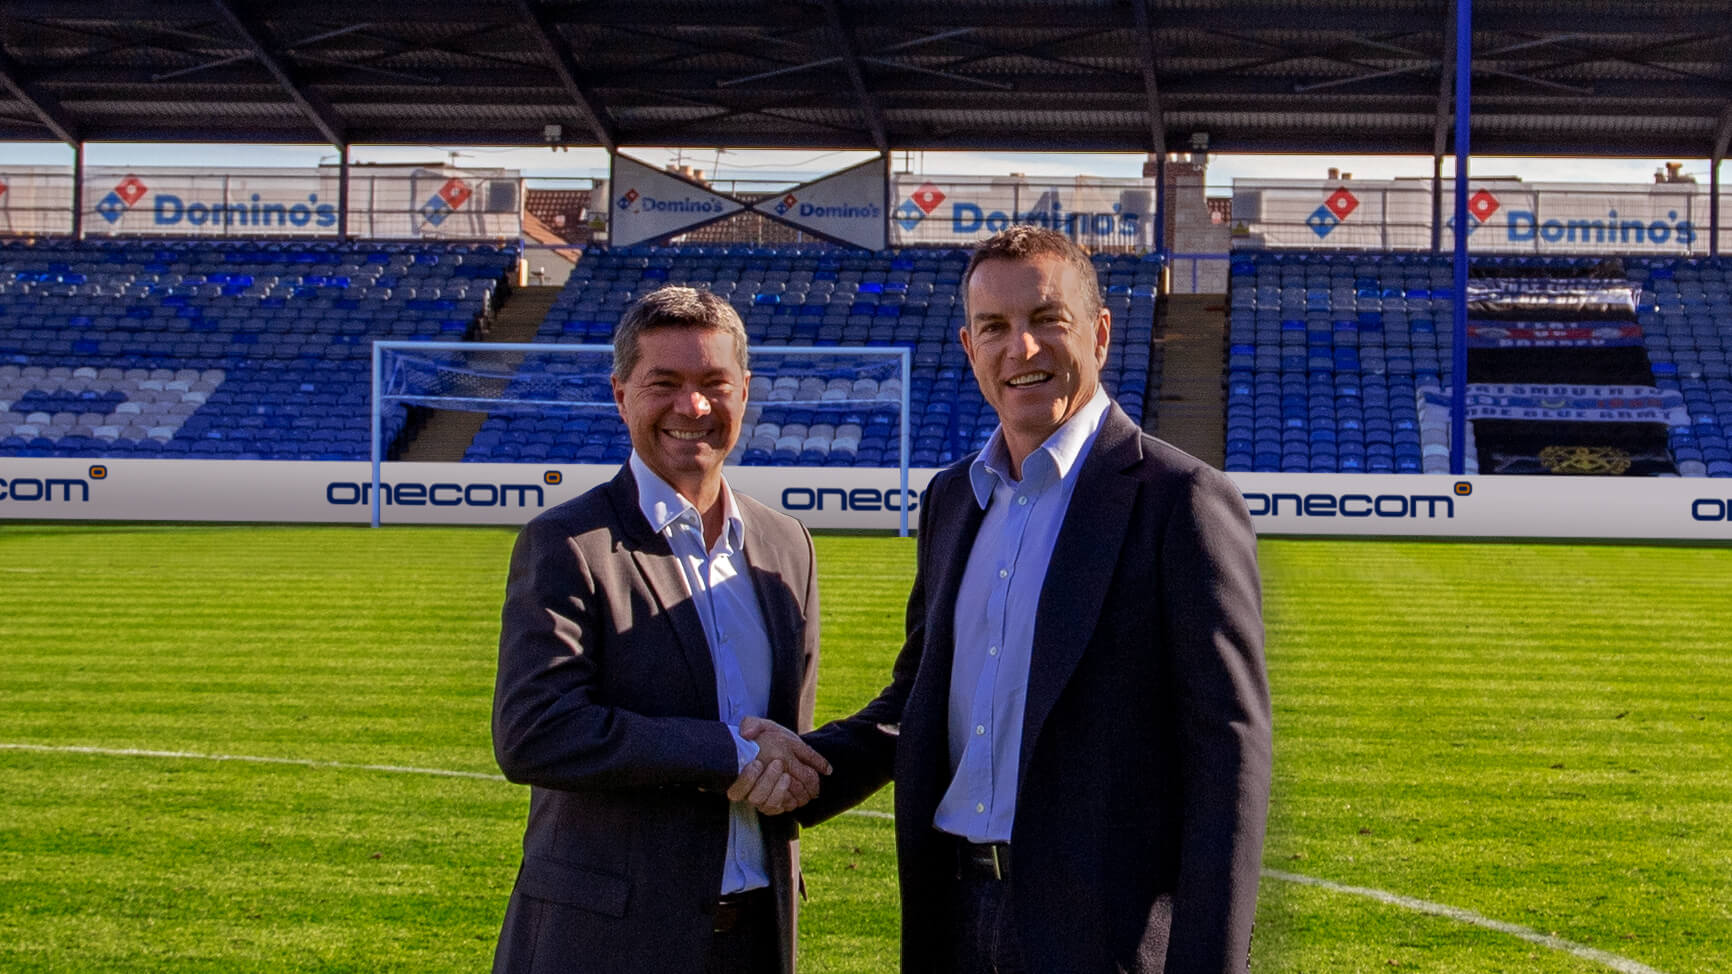 Onecom announced as Official Telecoms Partner of Portsmouth Football Club